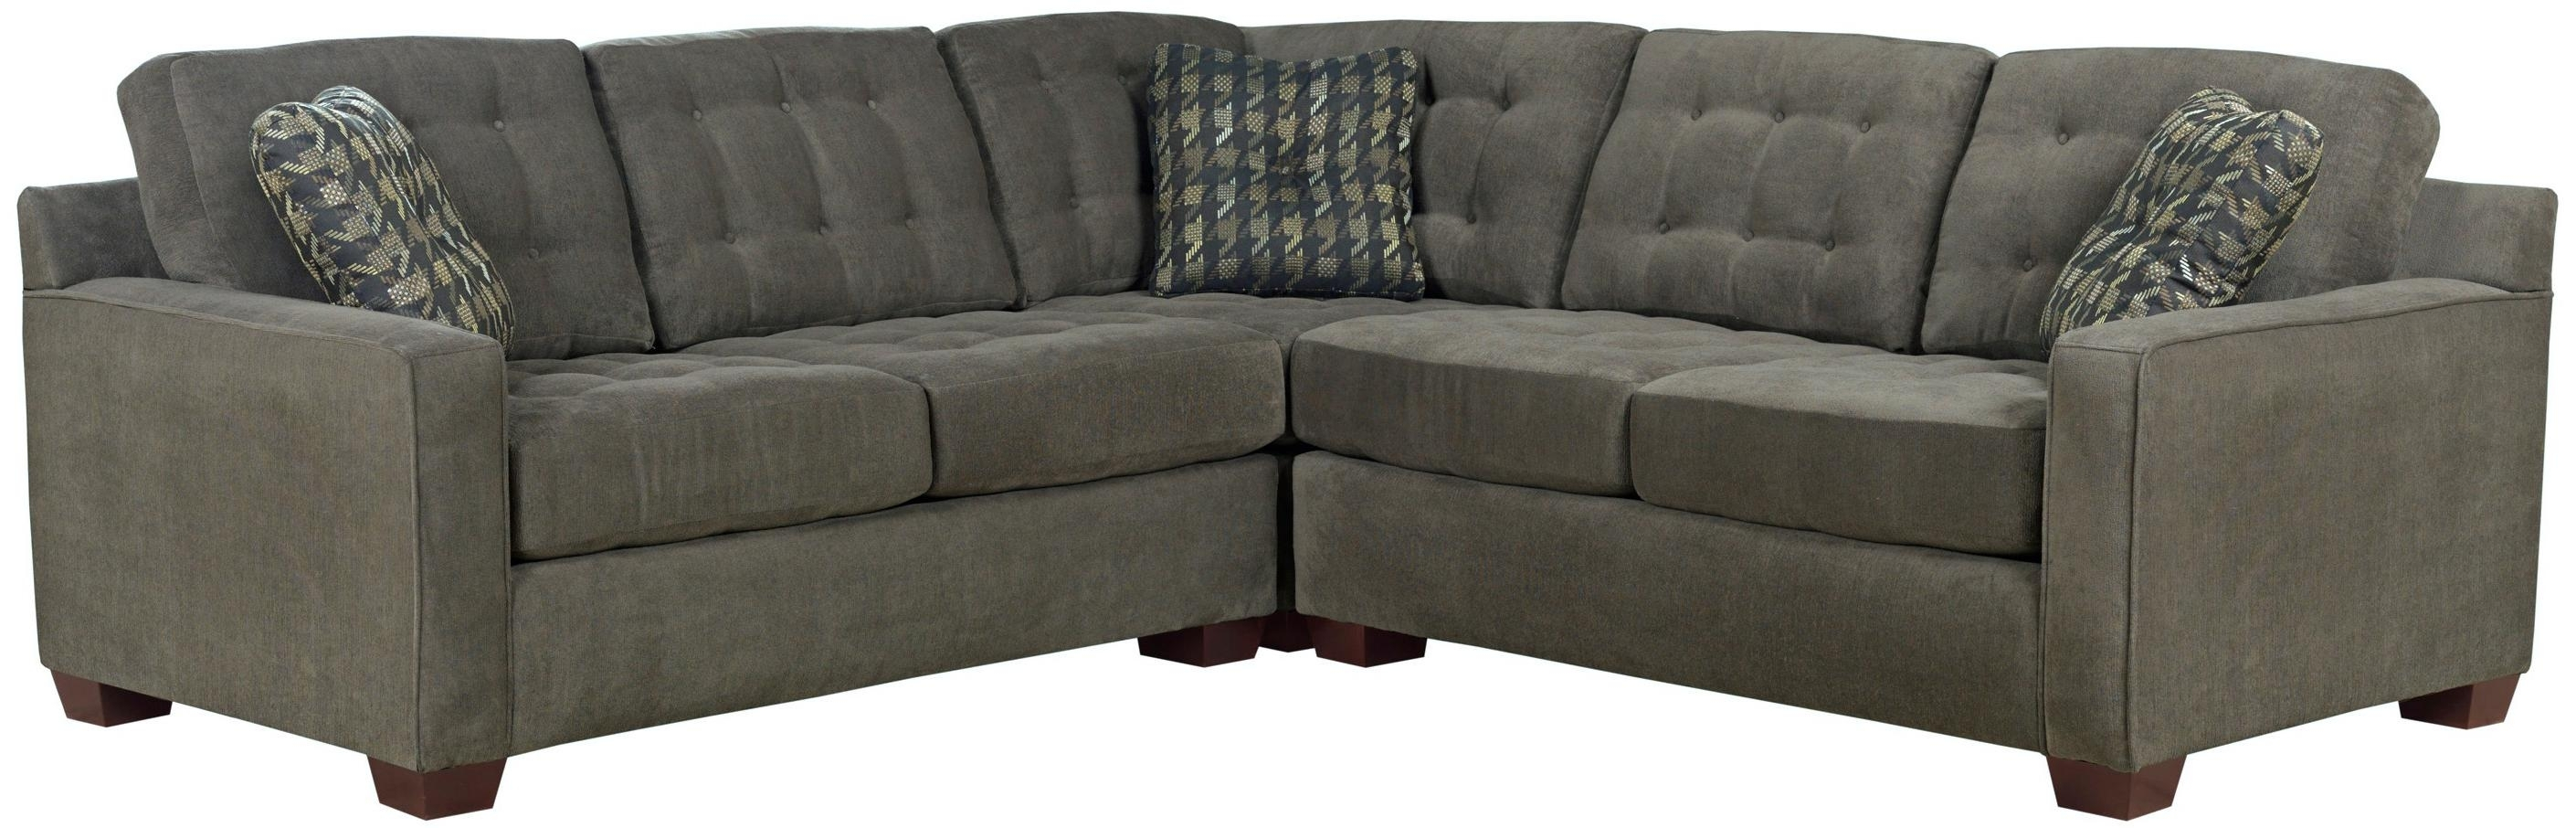 Broyhill Furniture Tribeca Contemporary L Shaped Sectional Sofa Within Sam Levitz Sectional Sofas (Image 4 of 10)